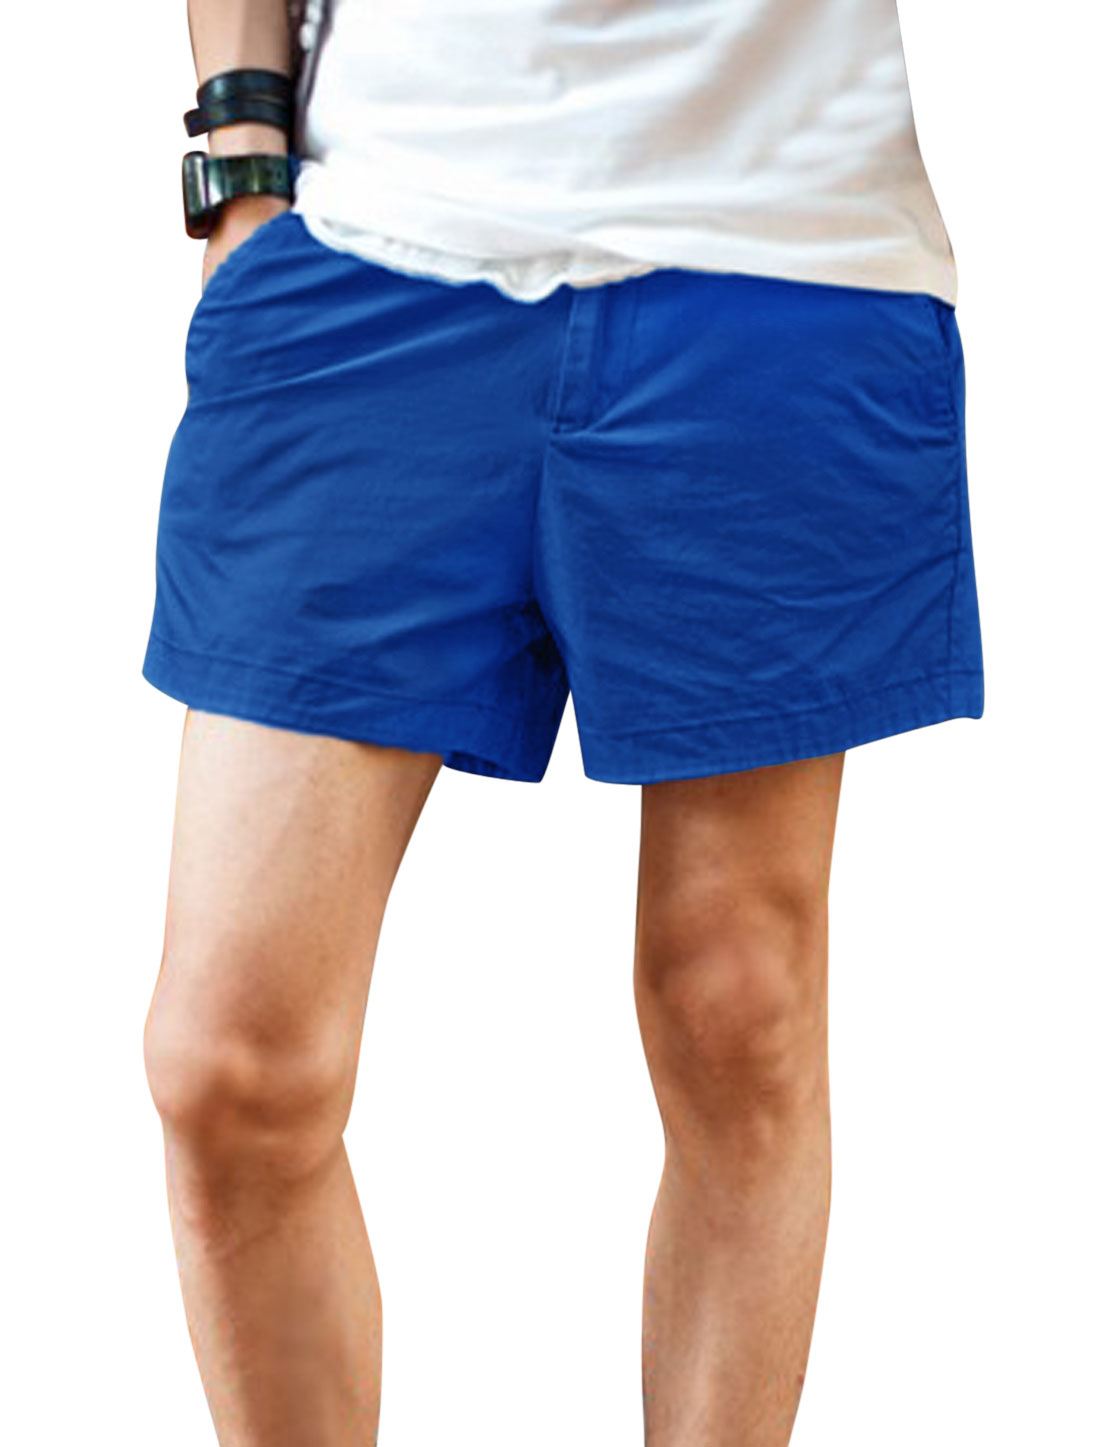 Men Zip Up Welt Pockets Back Casual Short Shorts Royal Blue W30